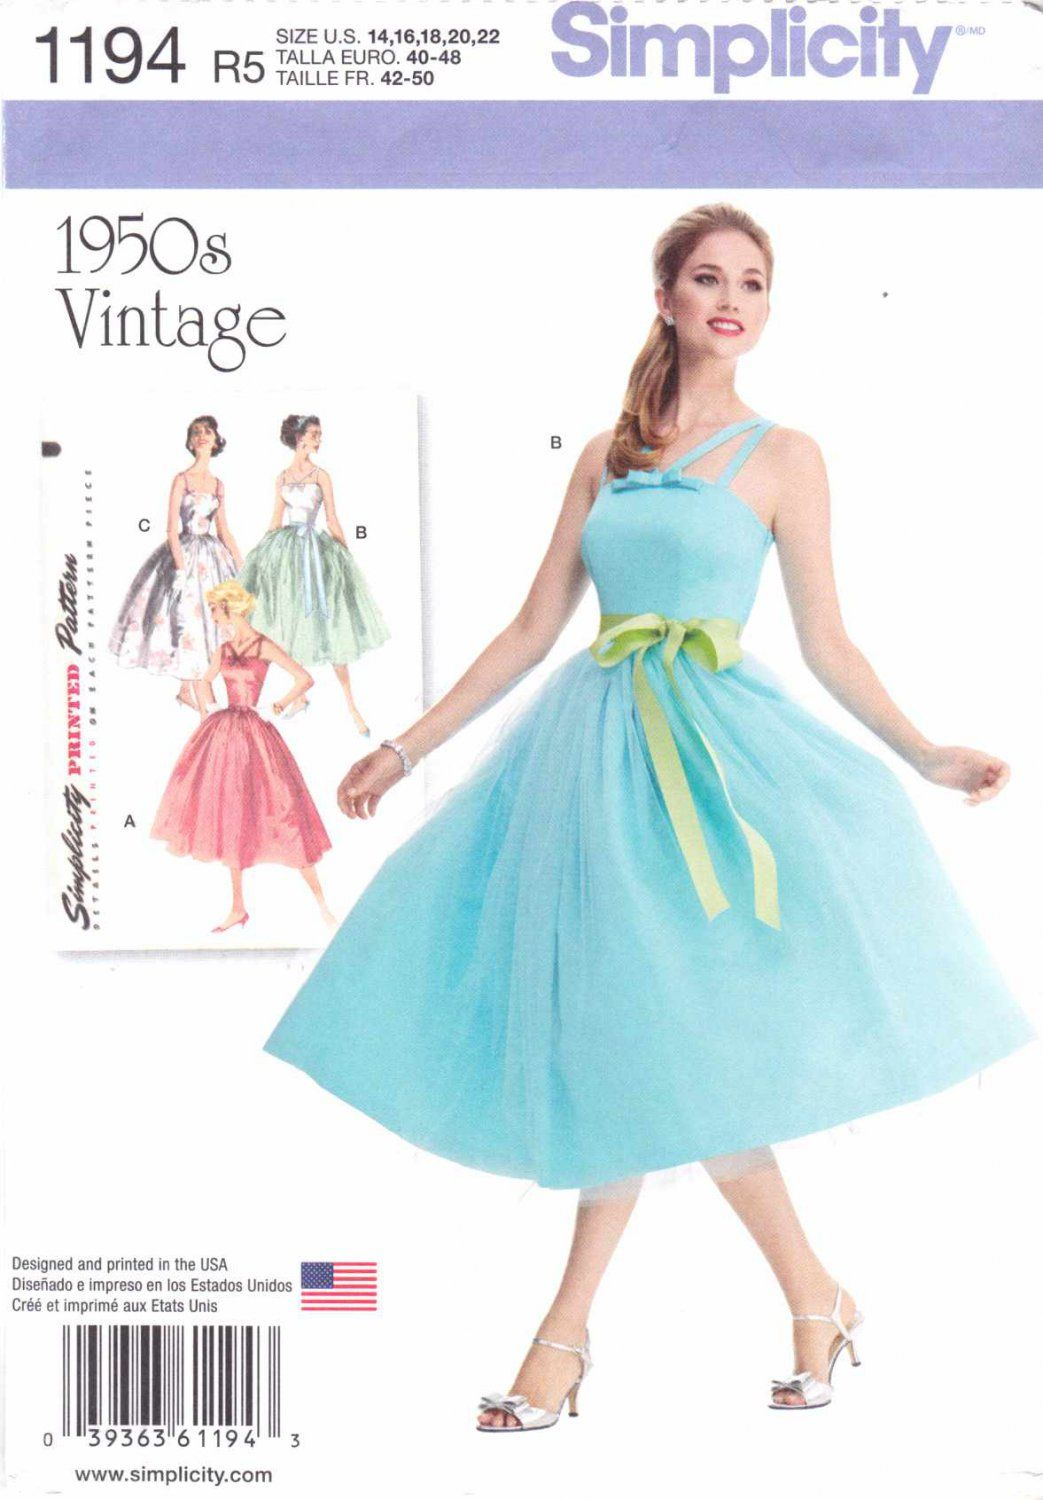 Simplicity Sewing Pattern 1194 Misses Sizes 14-22 Vintage Style ...